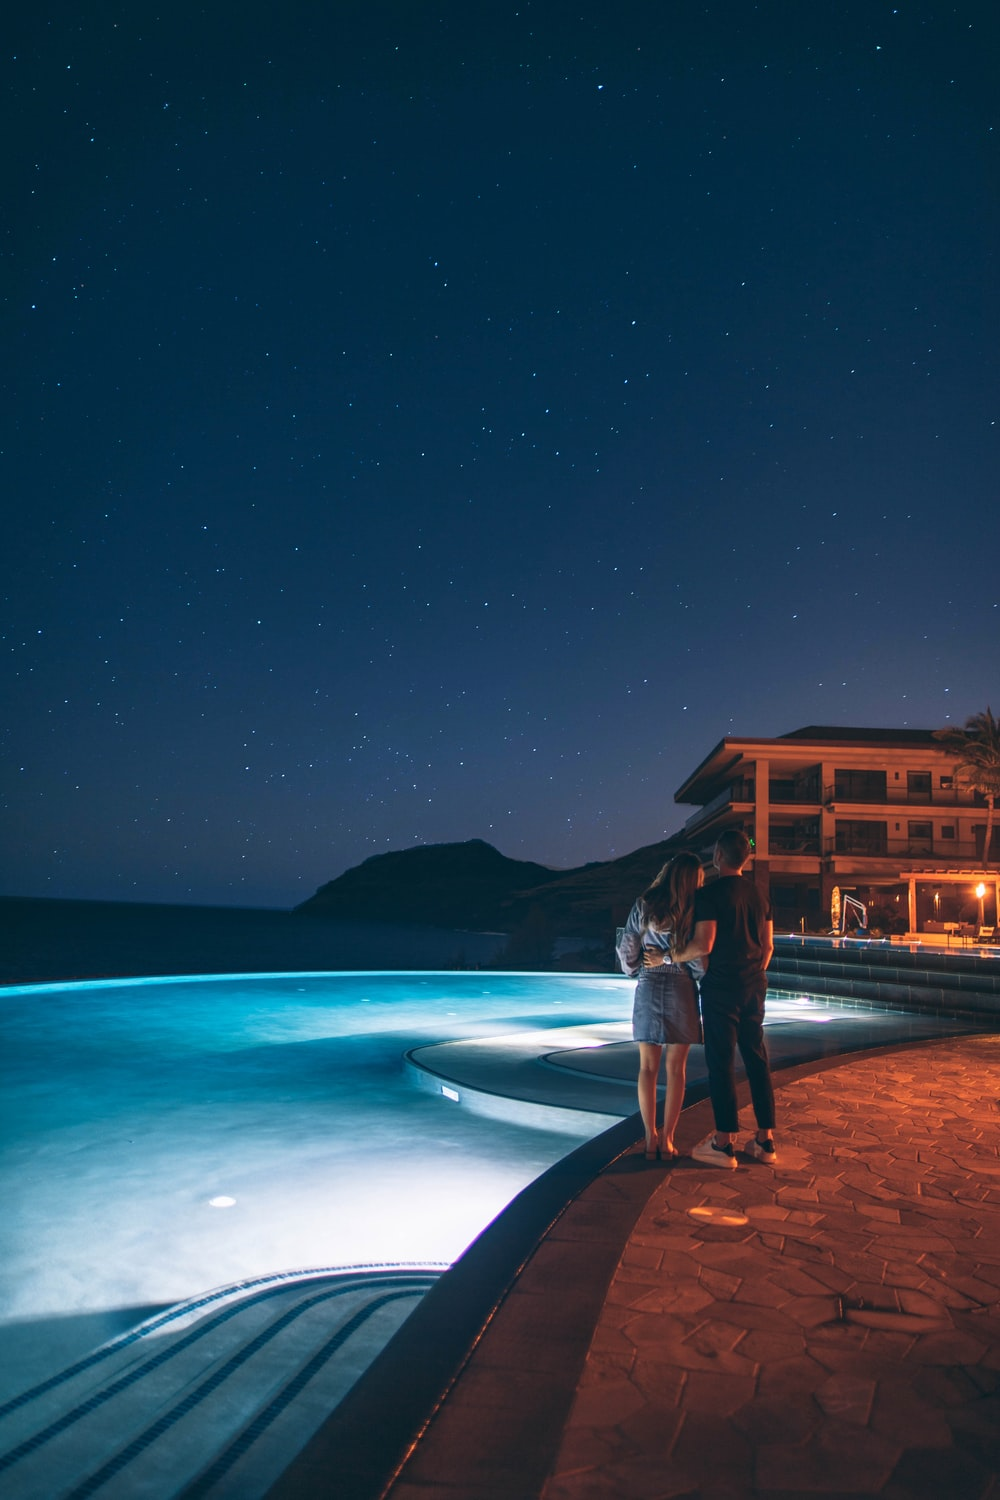 man and woman standing near pool